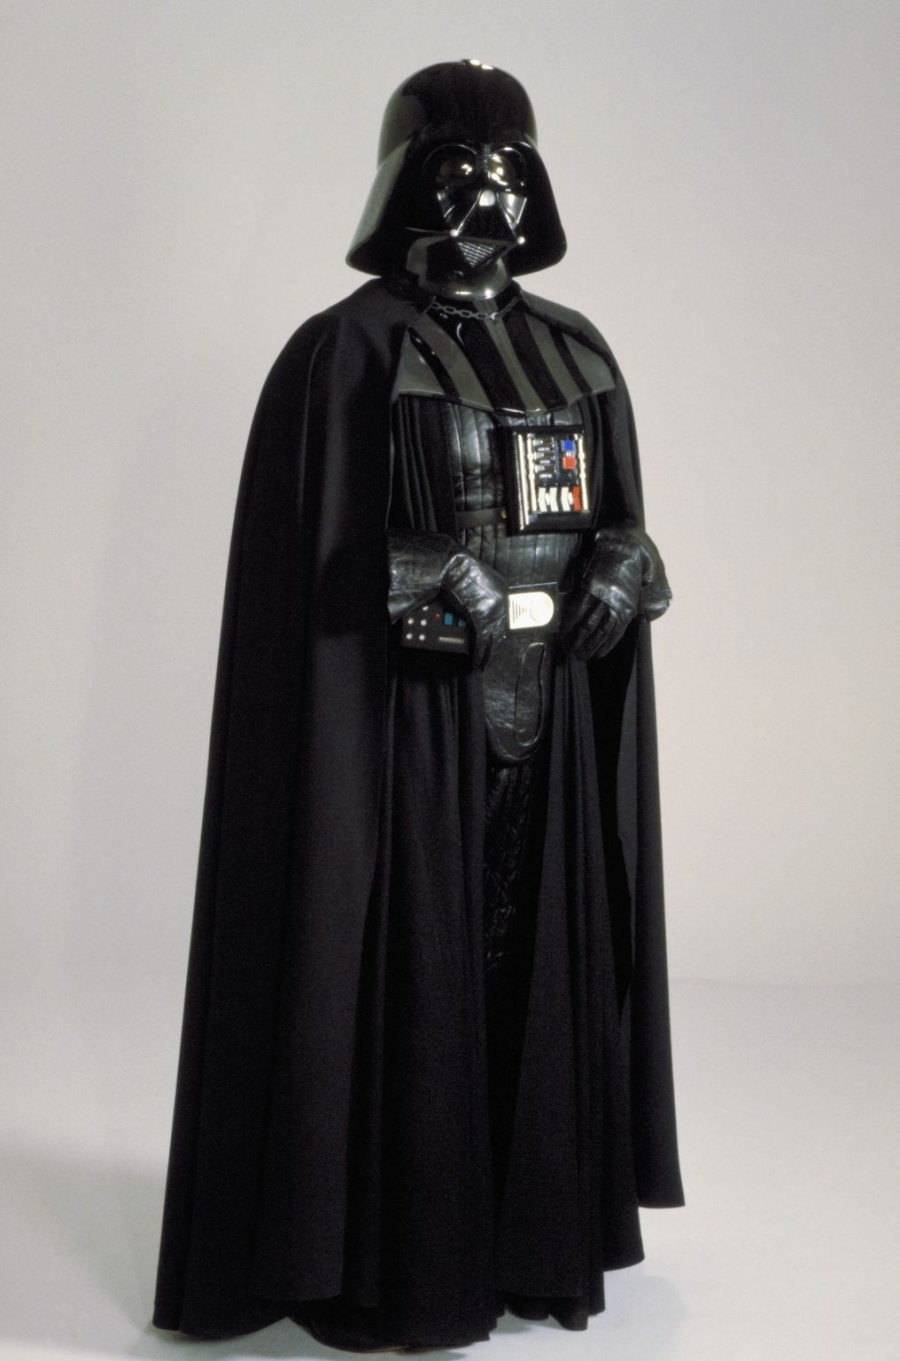 Darth Vader. Costume Design by John Mollo, Star Wars: A New Hope (1977)